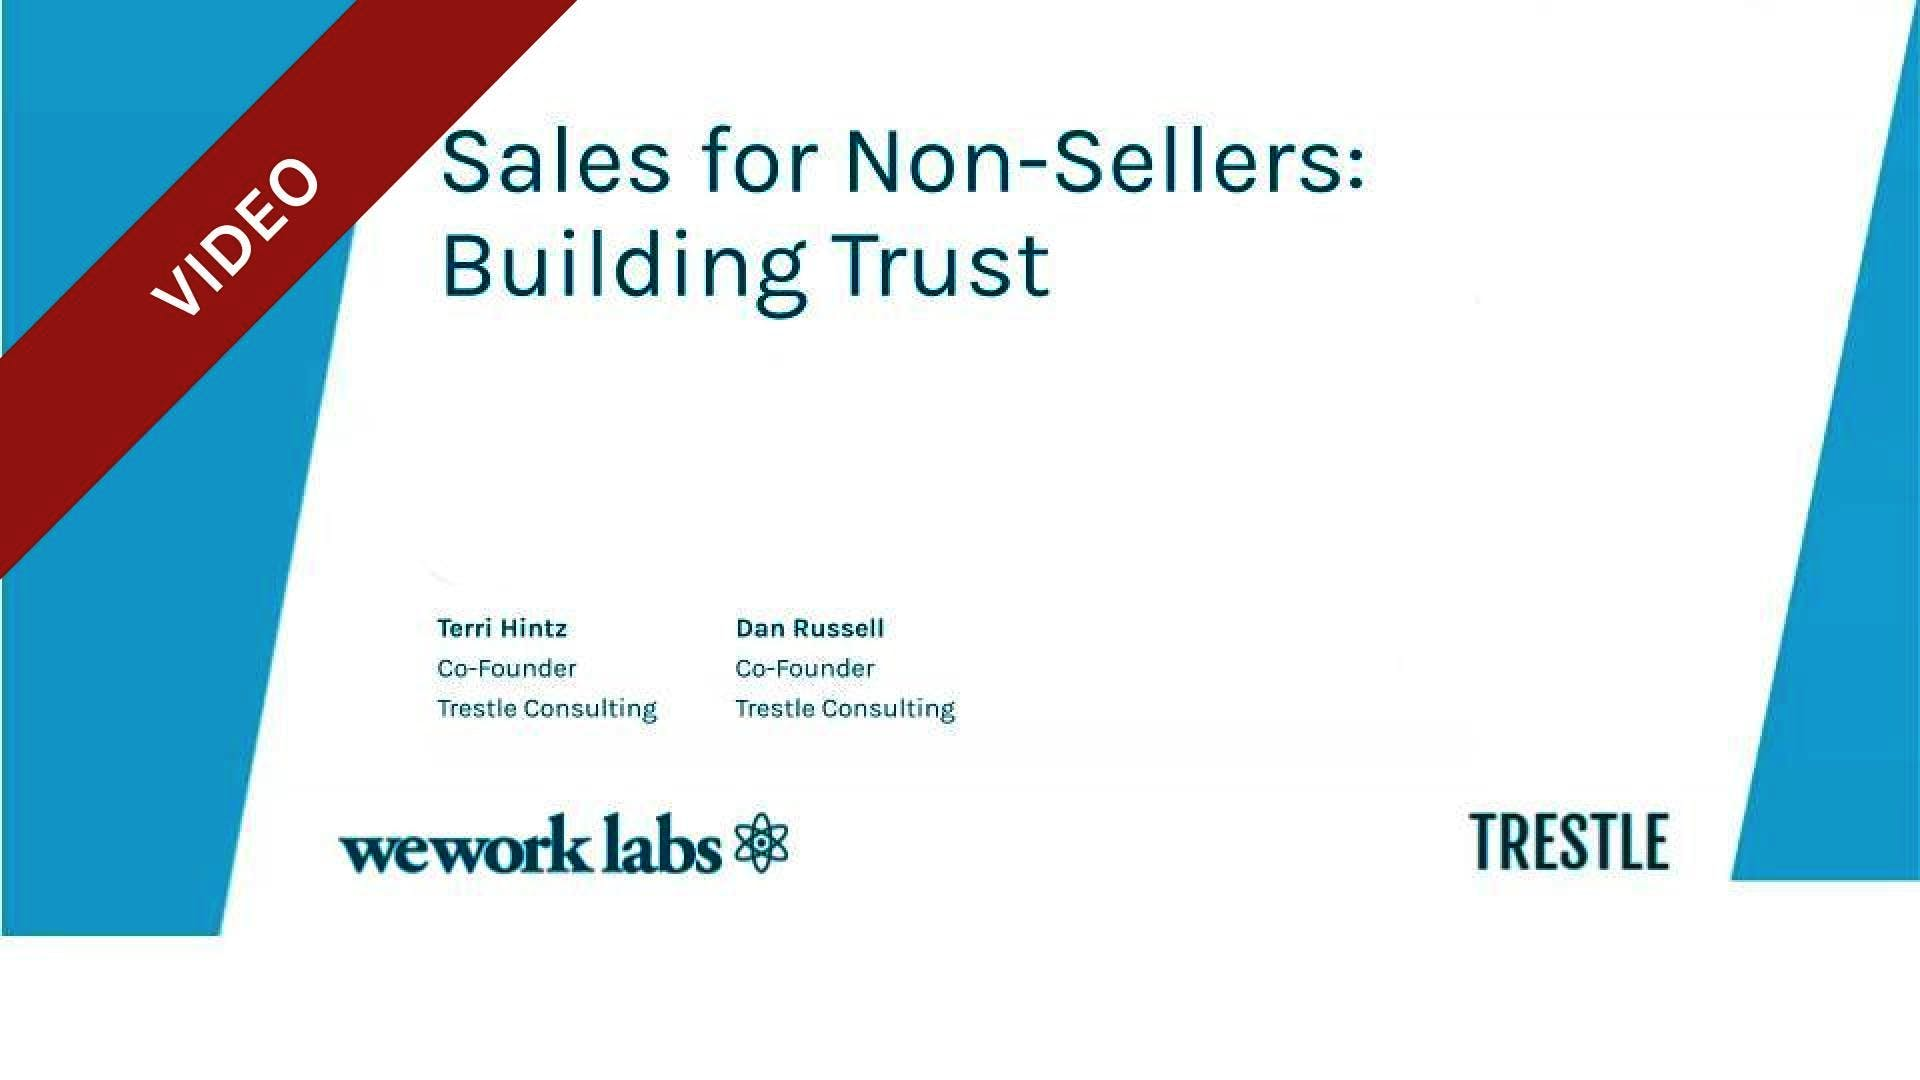 Sales for Non-Sellers: Building Trust